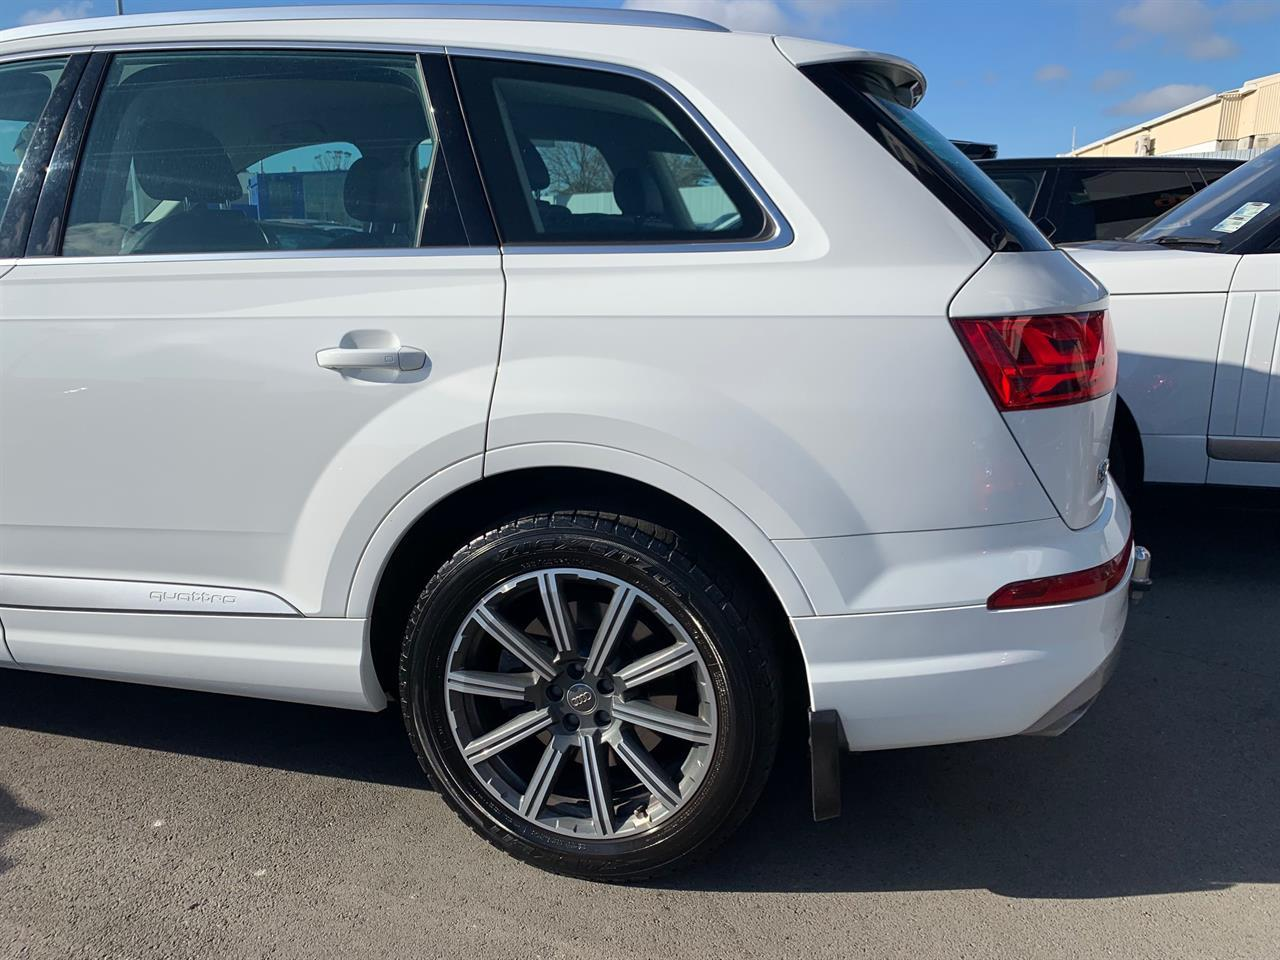 image-4, 2016 Audi Q7 3.0 TDI 200KW 8 Speed New Shape at Christchurch